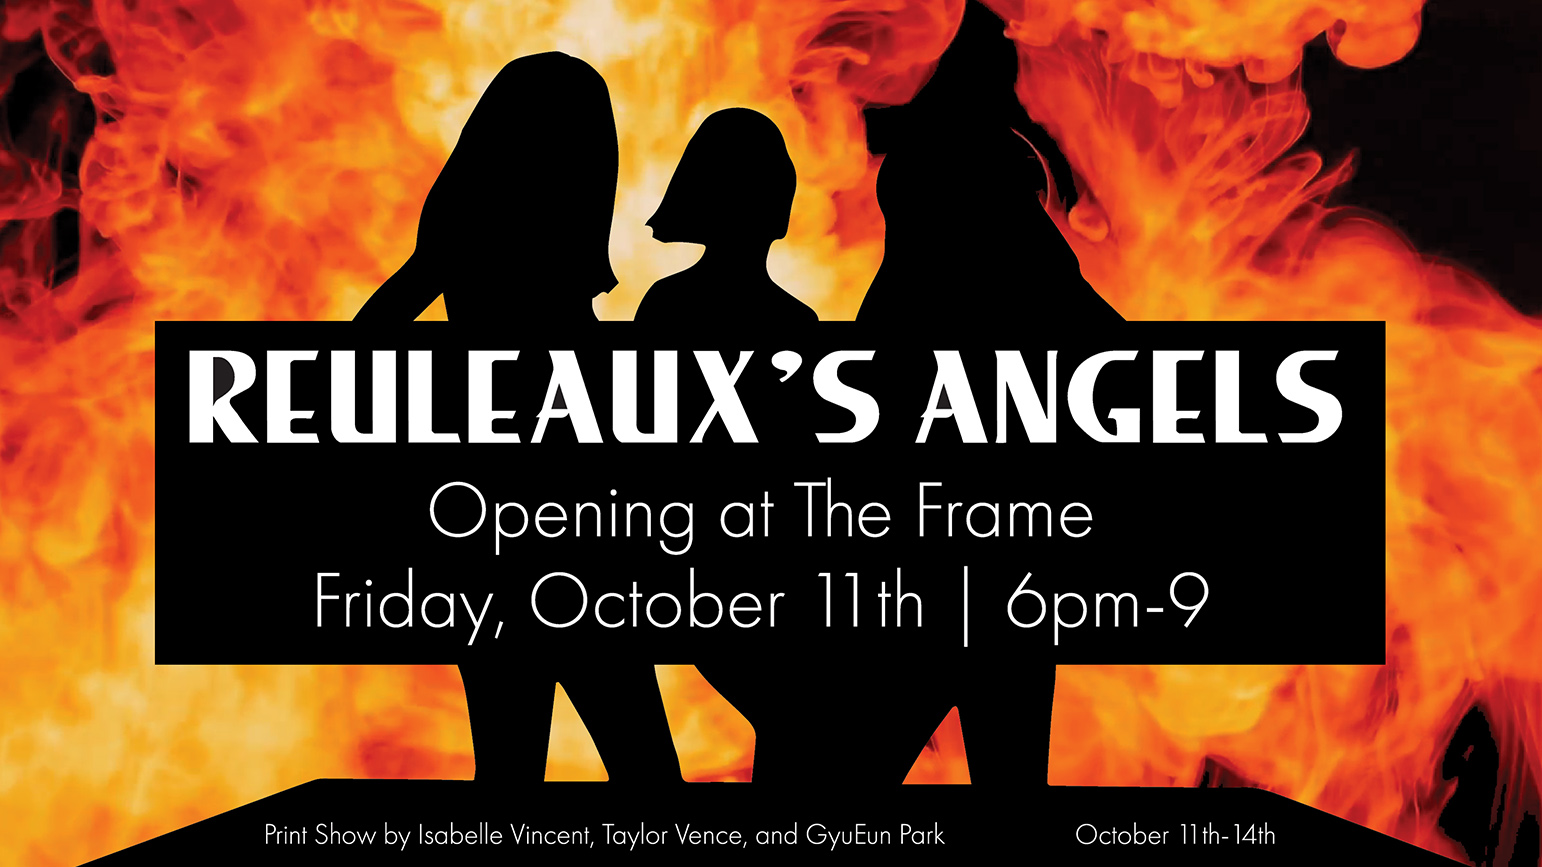 """Three silhouettes against flames with the words """"Reauleaux's Angels"""" superimposed on top"""